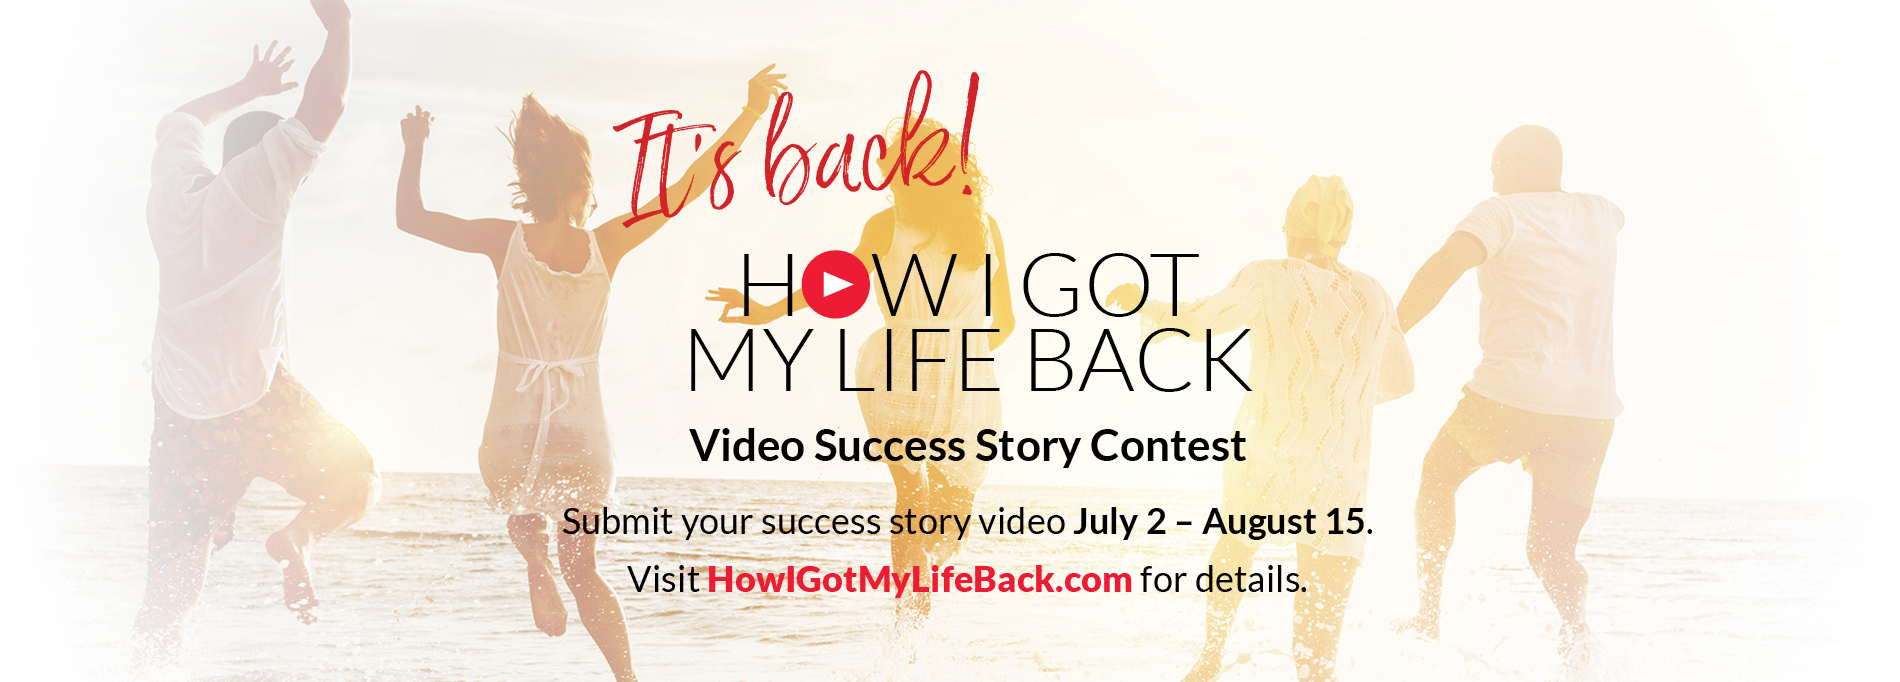 Video-success-story-contest-website-banner (2)